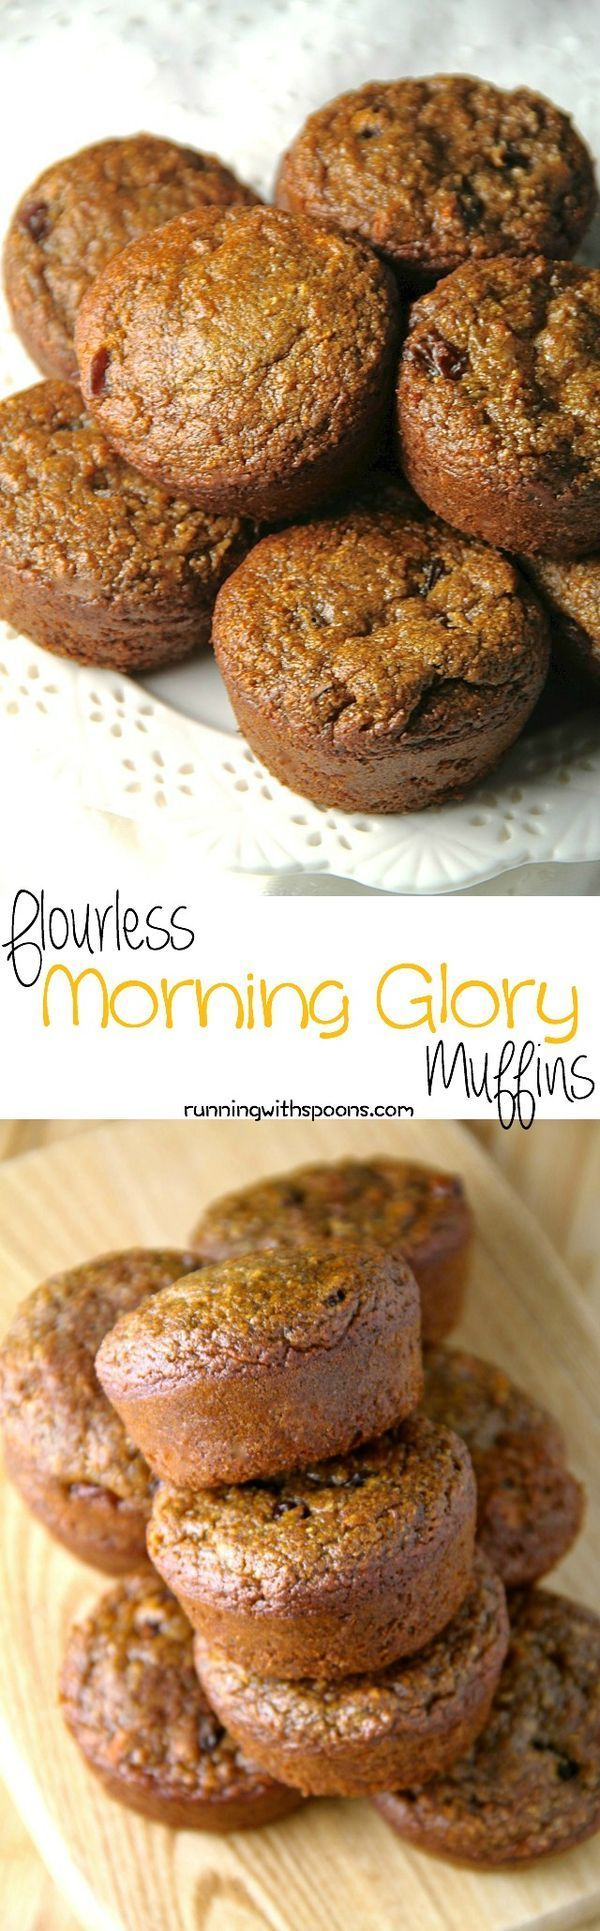 These delicious Flourless Morning Glory Muffins are gluten-free, refined sugar-free, dairy-free, oil-free and whipped up in the blender in under 5 minutes flat! || http://runningwithspoons.com #glutenfree #muffins